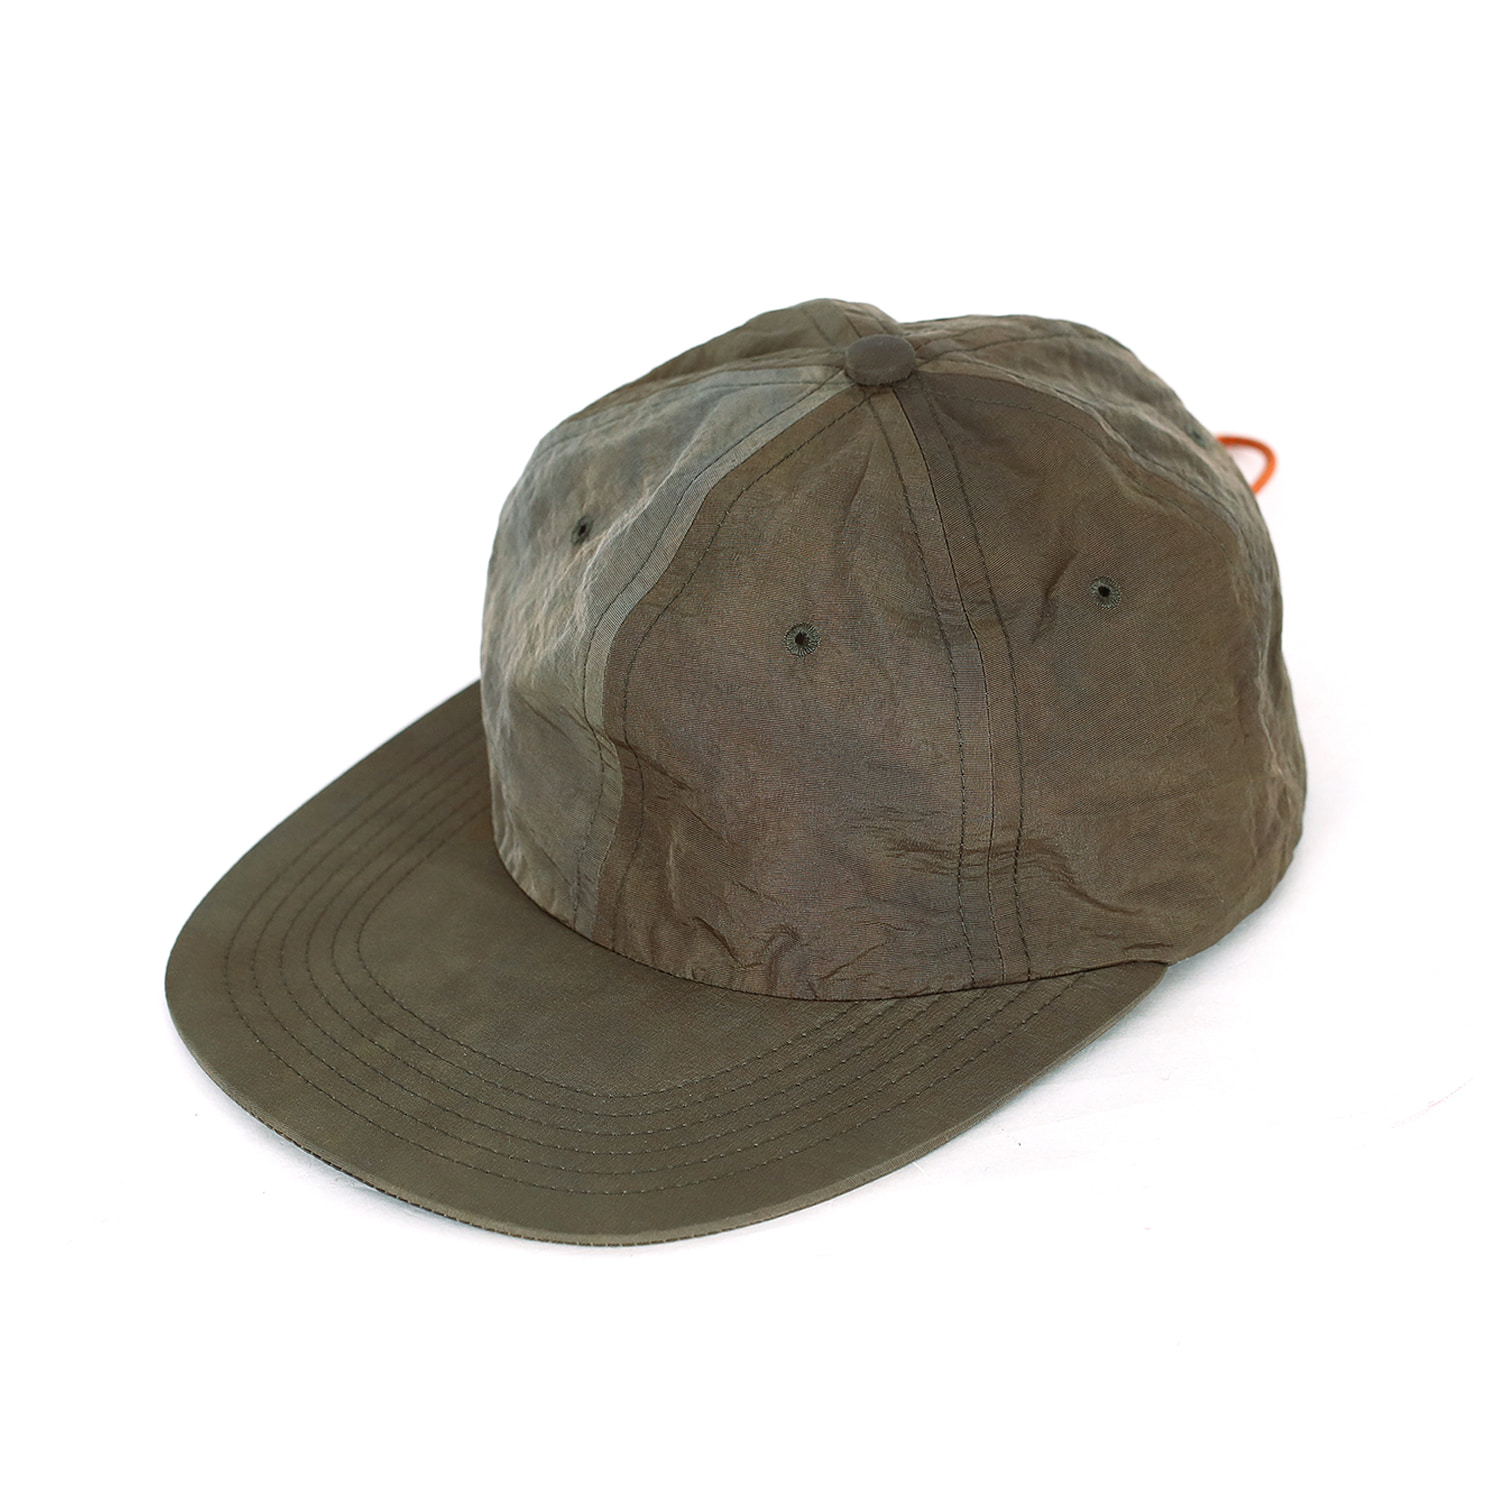 Travel Cap - Camo